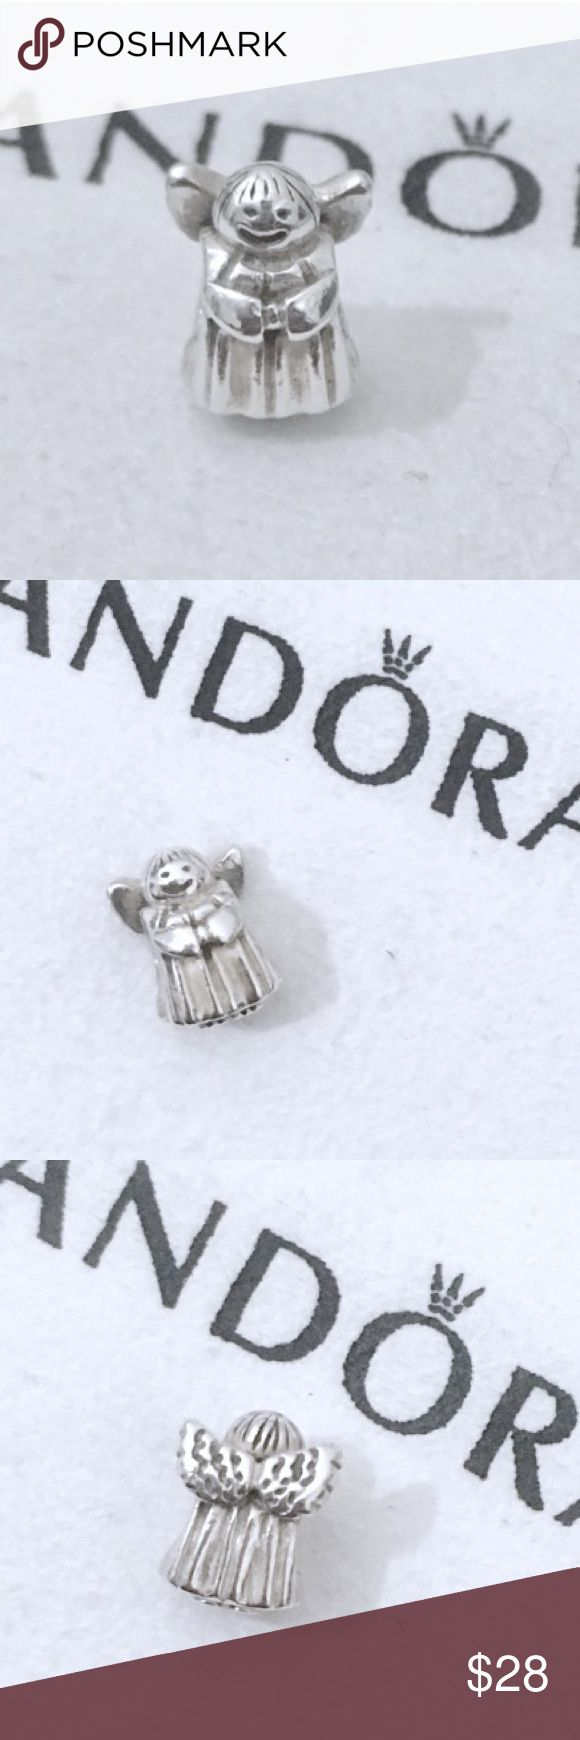 Pandora angel charm sterling silver angel of hope Authentic pandora charm. Pandora angel charm with textured angel wings. Sterling silver charm, stamped with 925 Ale on the bottom. *Price is for the charm only, does not include cloth or bracelet, sorry I not have the box* • Bundle to save! • No trades • No holds #Pandora charm, Pandora angel charm, angel Pandora charm, Pandora angel wings charm, Pandora Christmas angel, Christmas Pandora charm, Pandora Christmas charm, Pandora angel of…